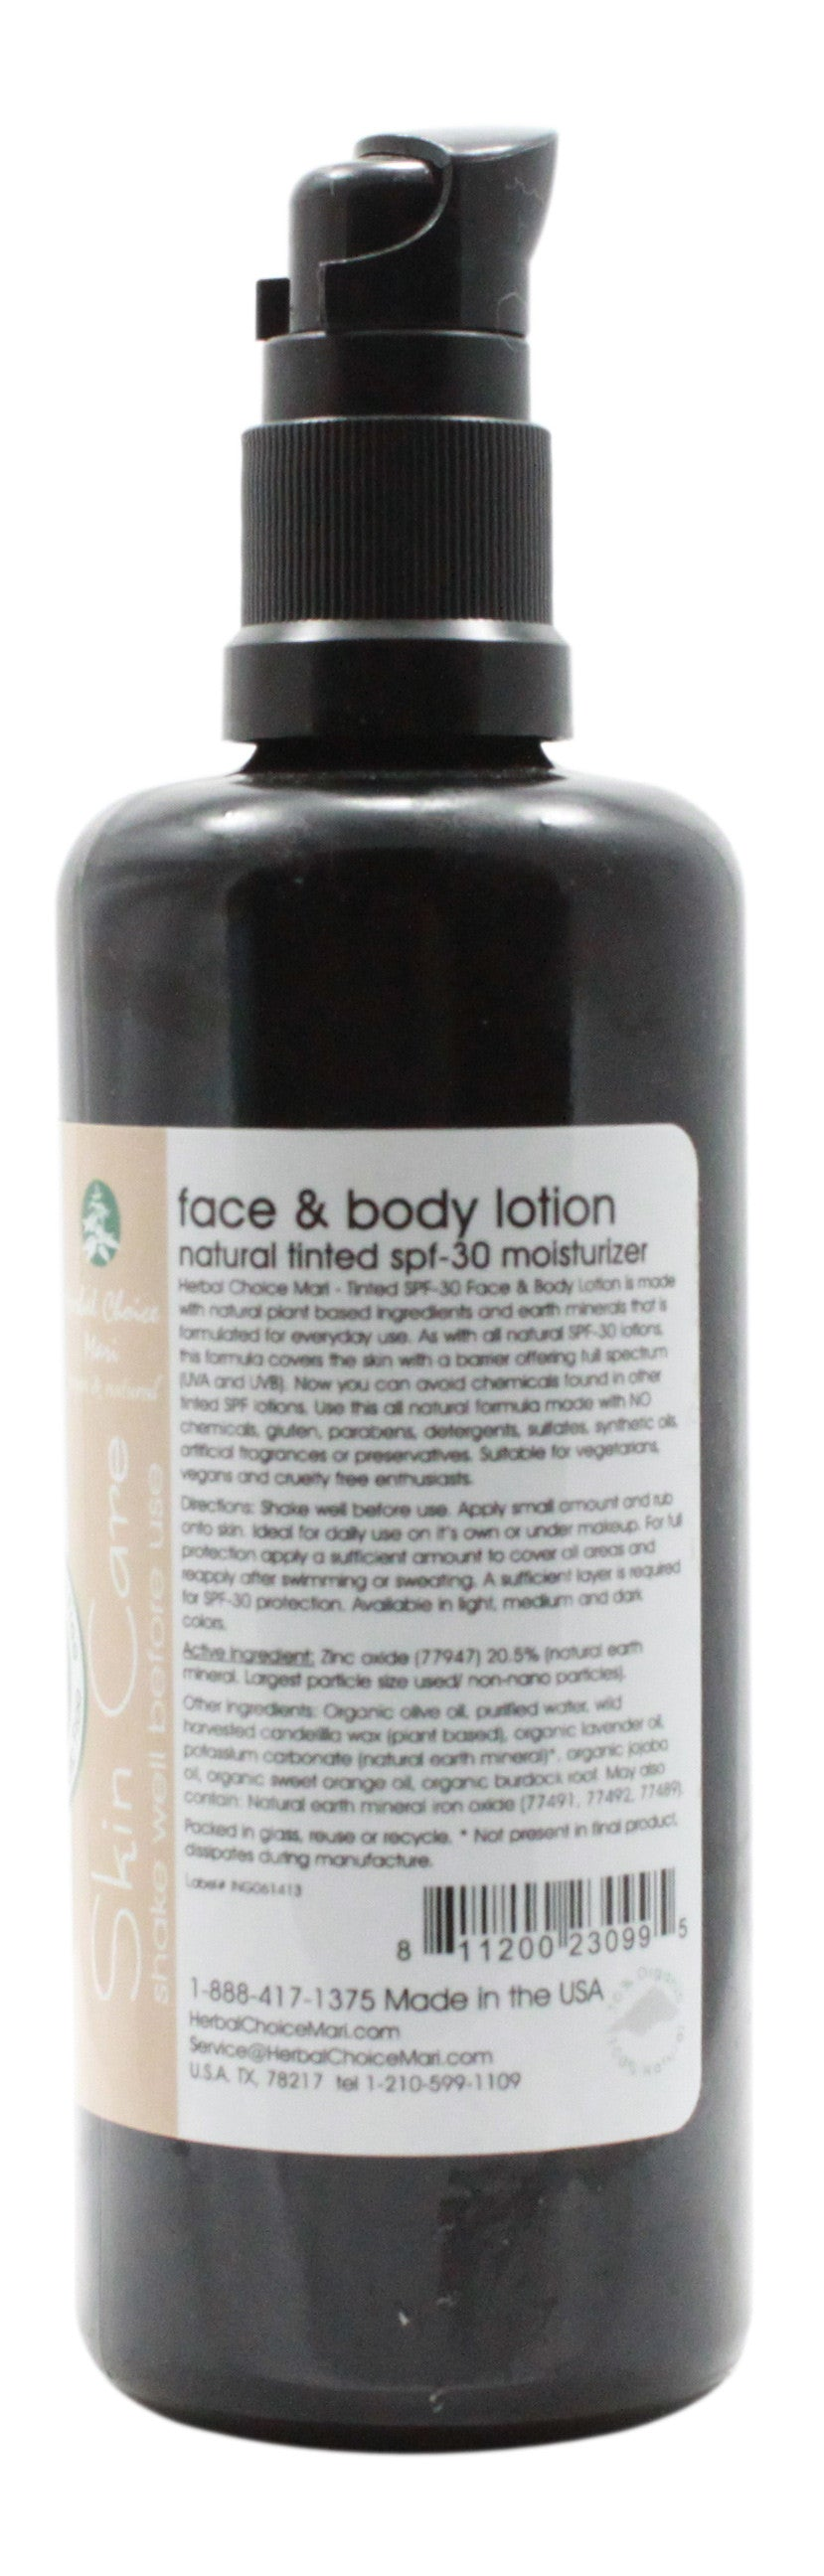 Tinted Face & Body Lotion - SPF 30 - Dark Honey - 3.4 oz - Info